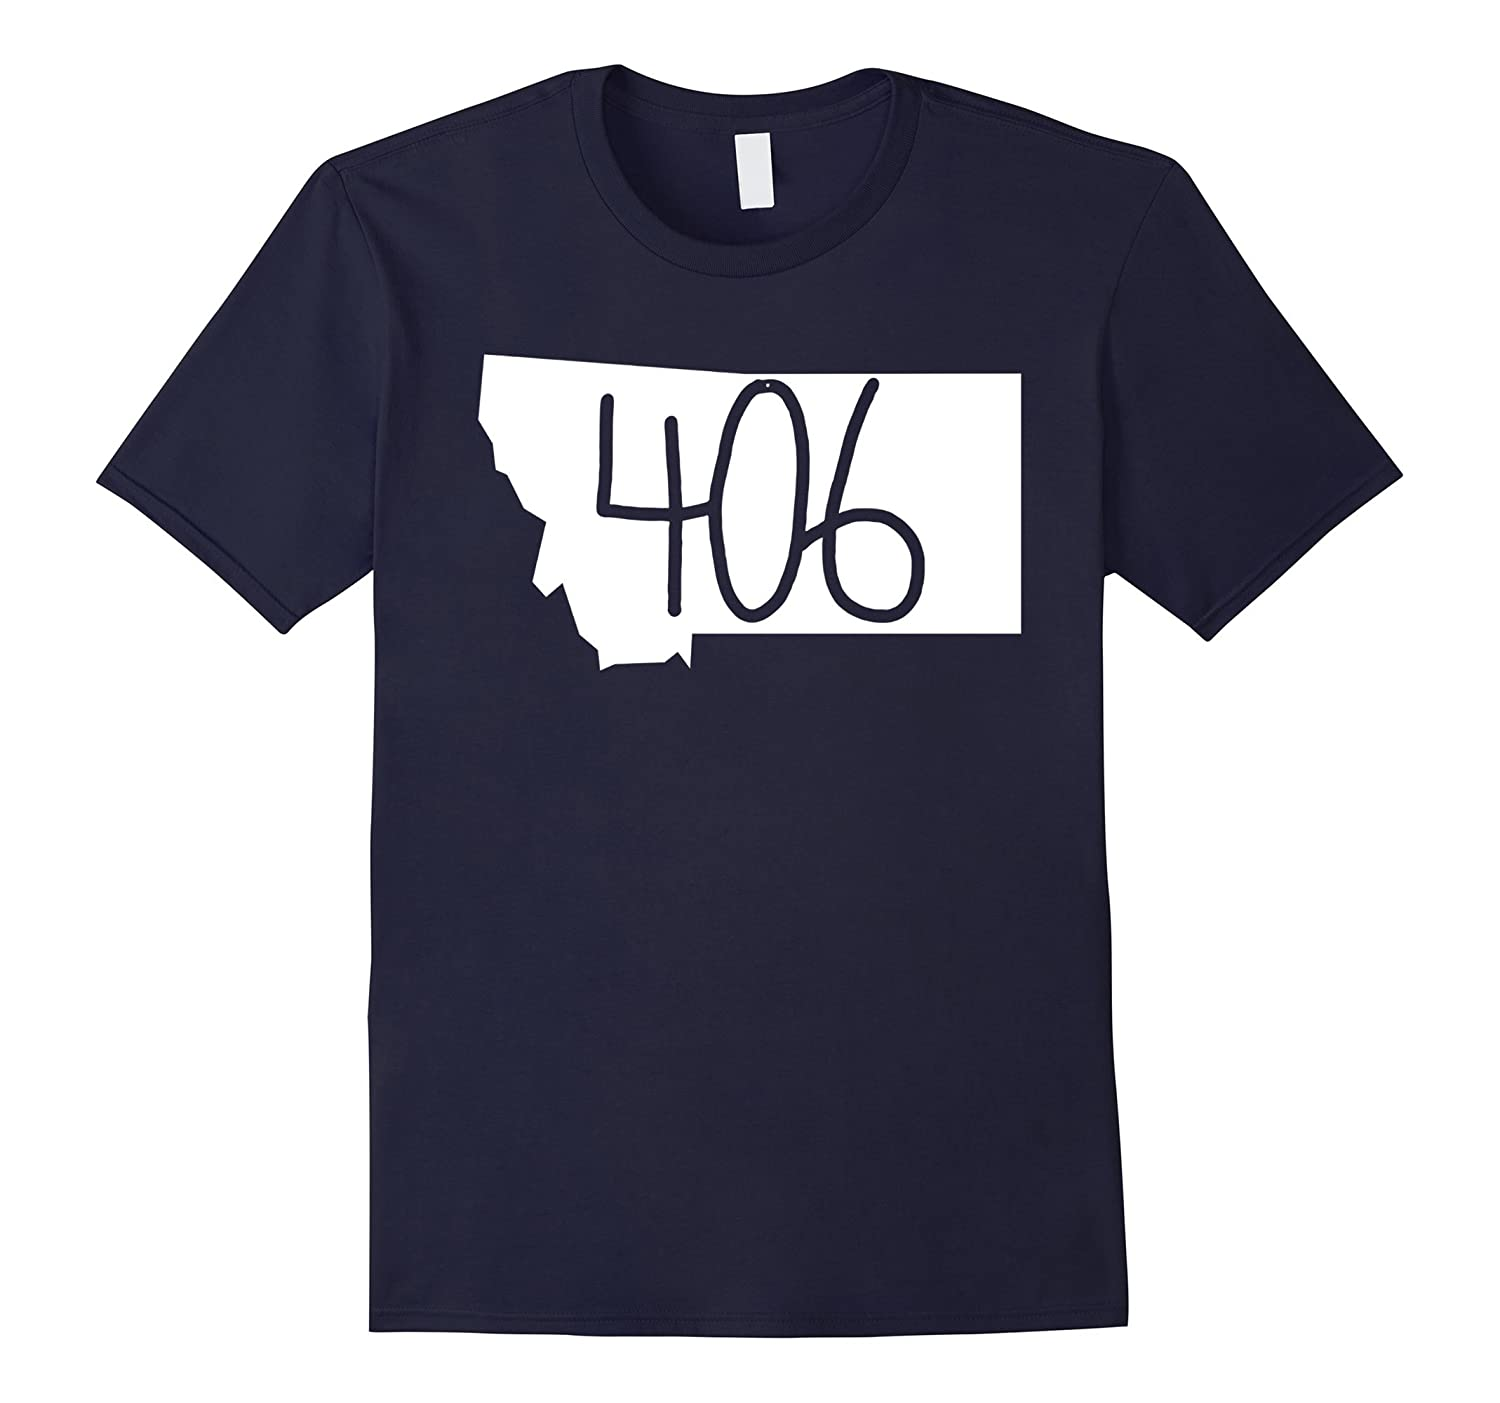 406 Montana T-Shirt State Local Pride Home Travel Adventure-T-Shirt